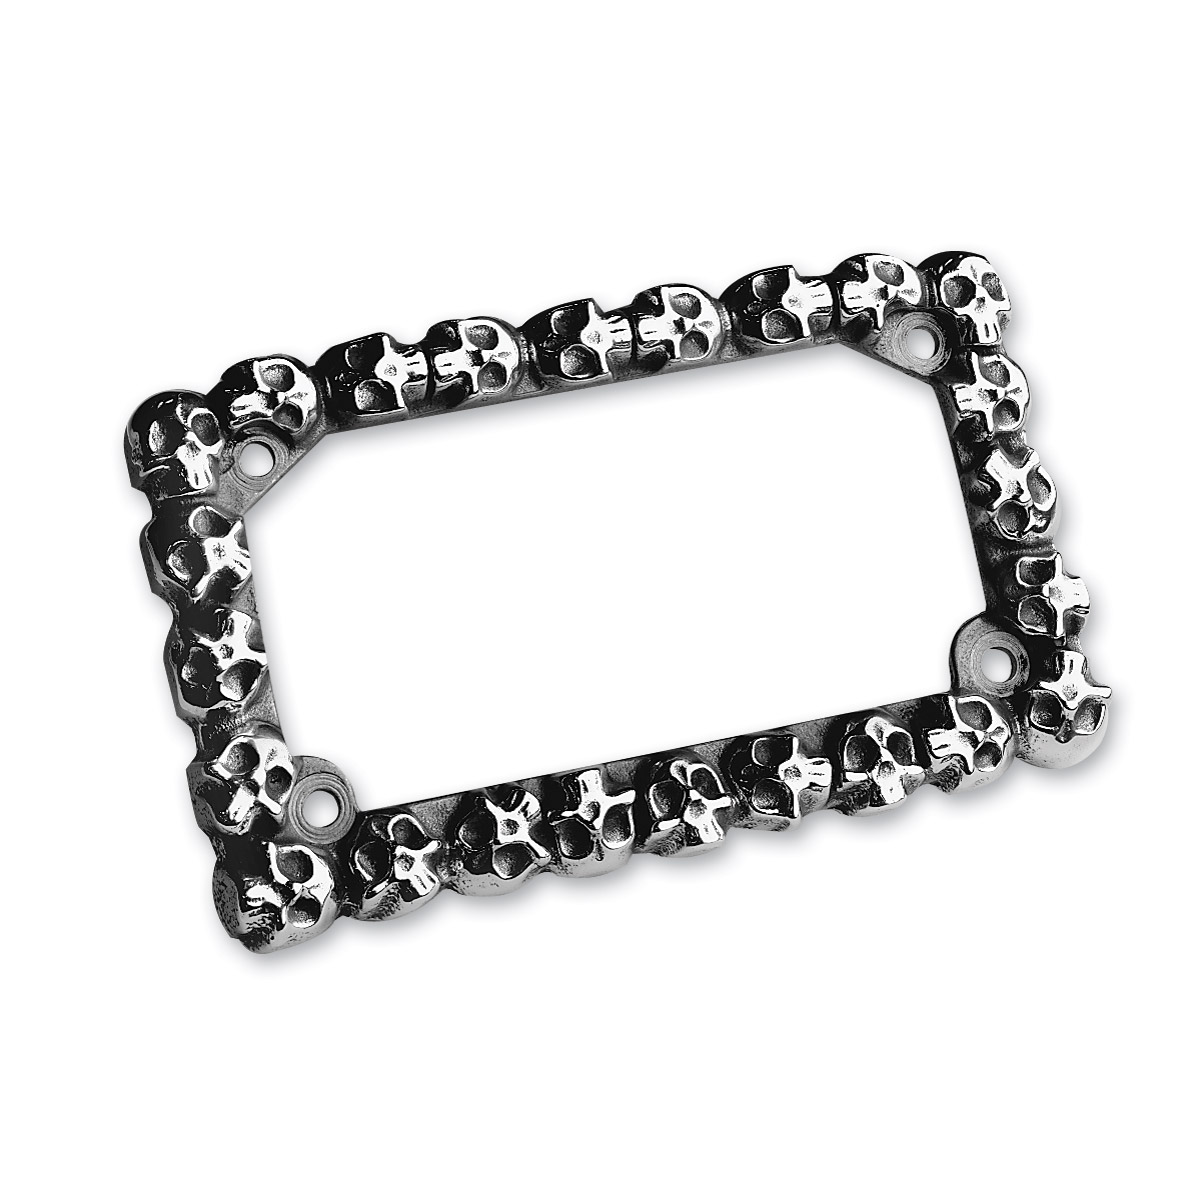 J&P Cycles® \'Skull\' License Plate Frame | 9700110 | J&P Cycles